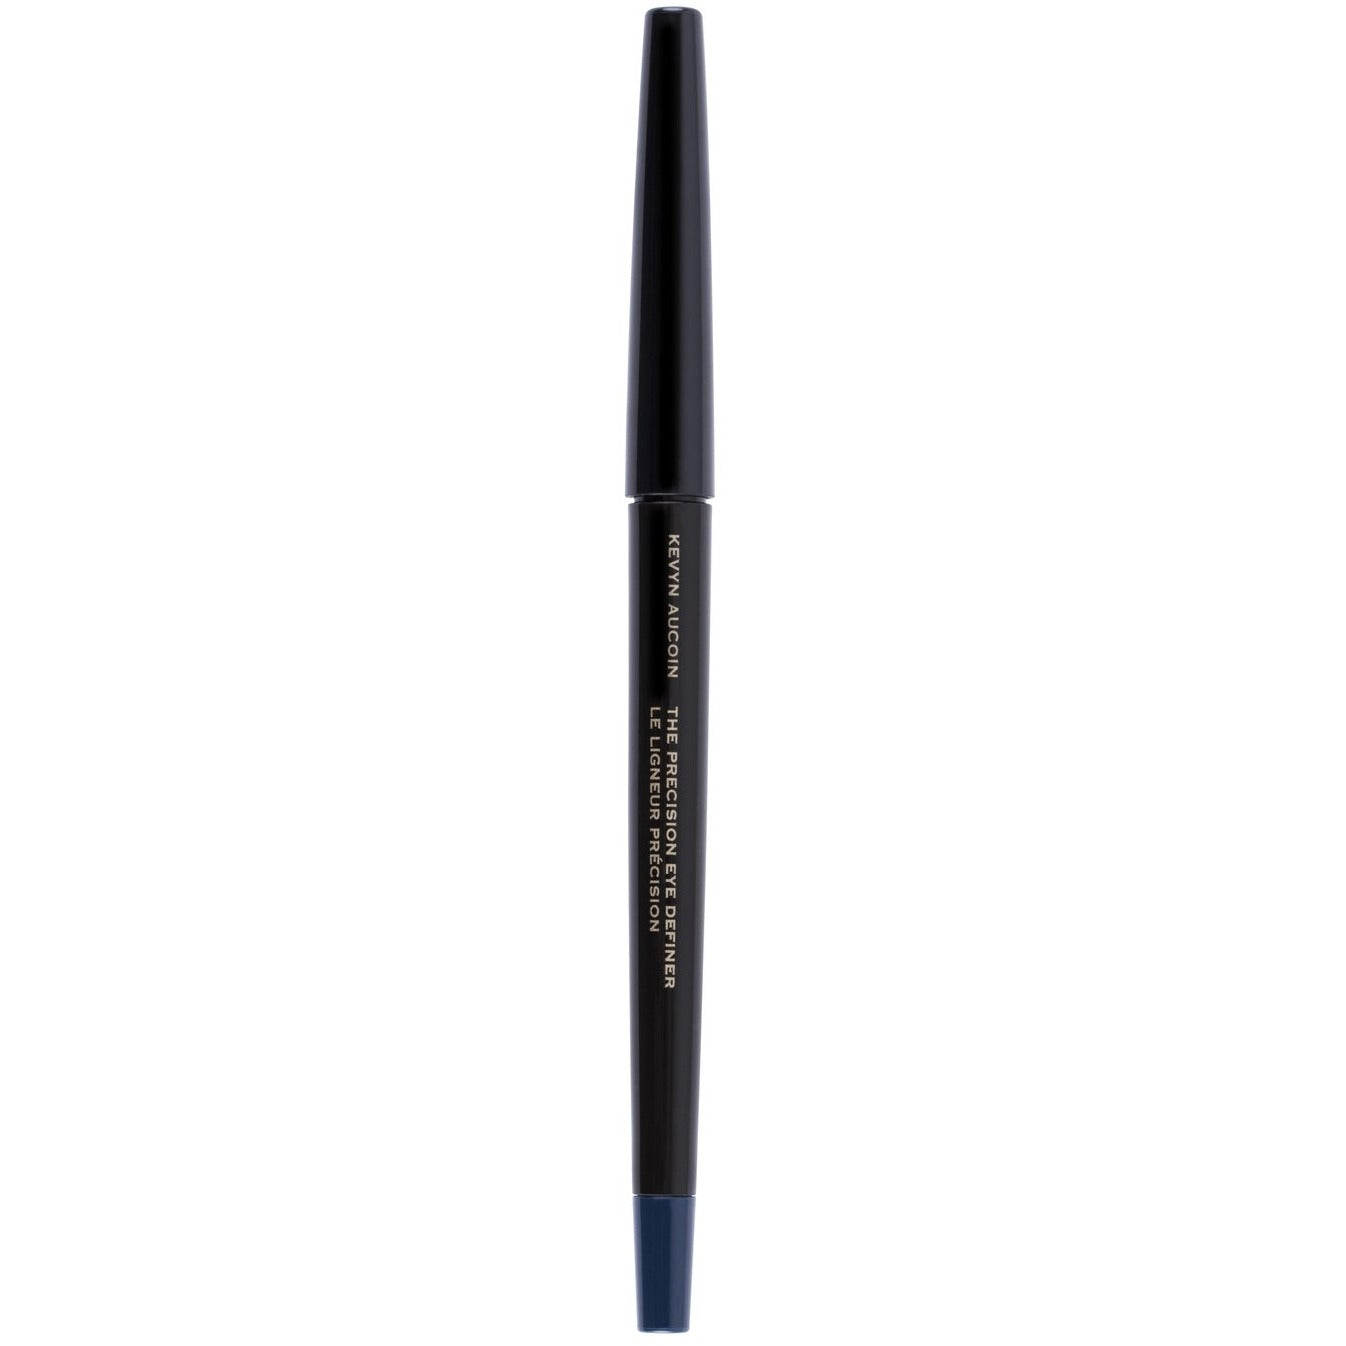 The Precision Eye Definer - Stealth